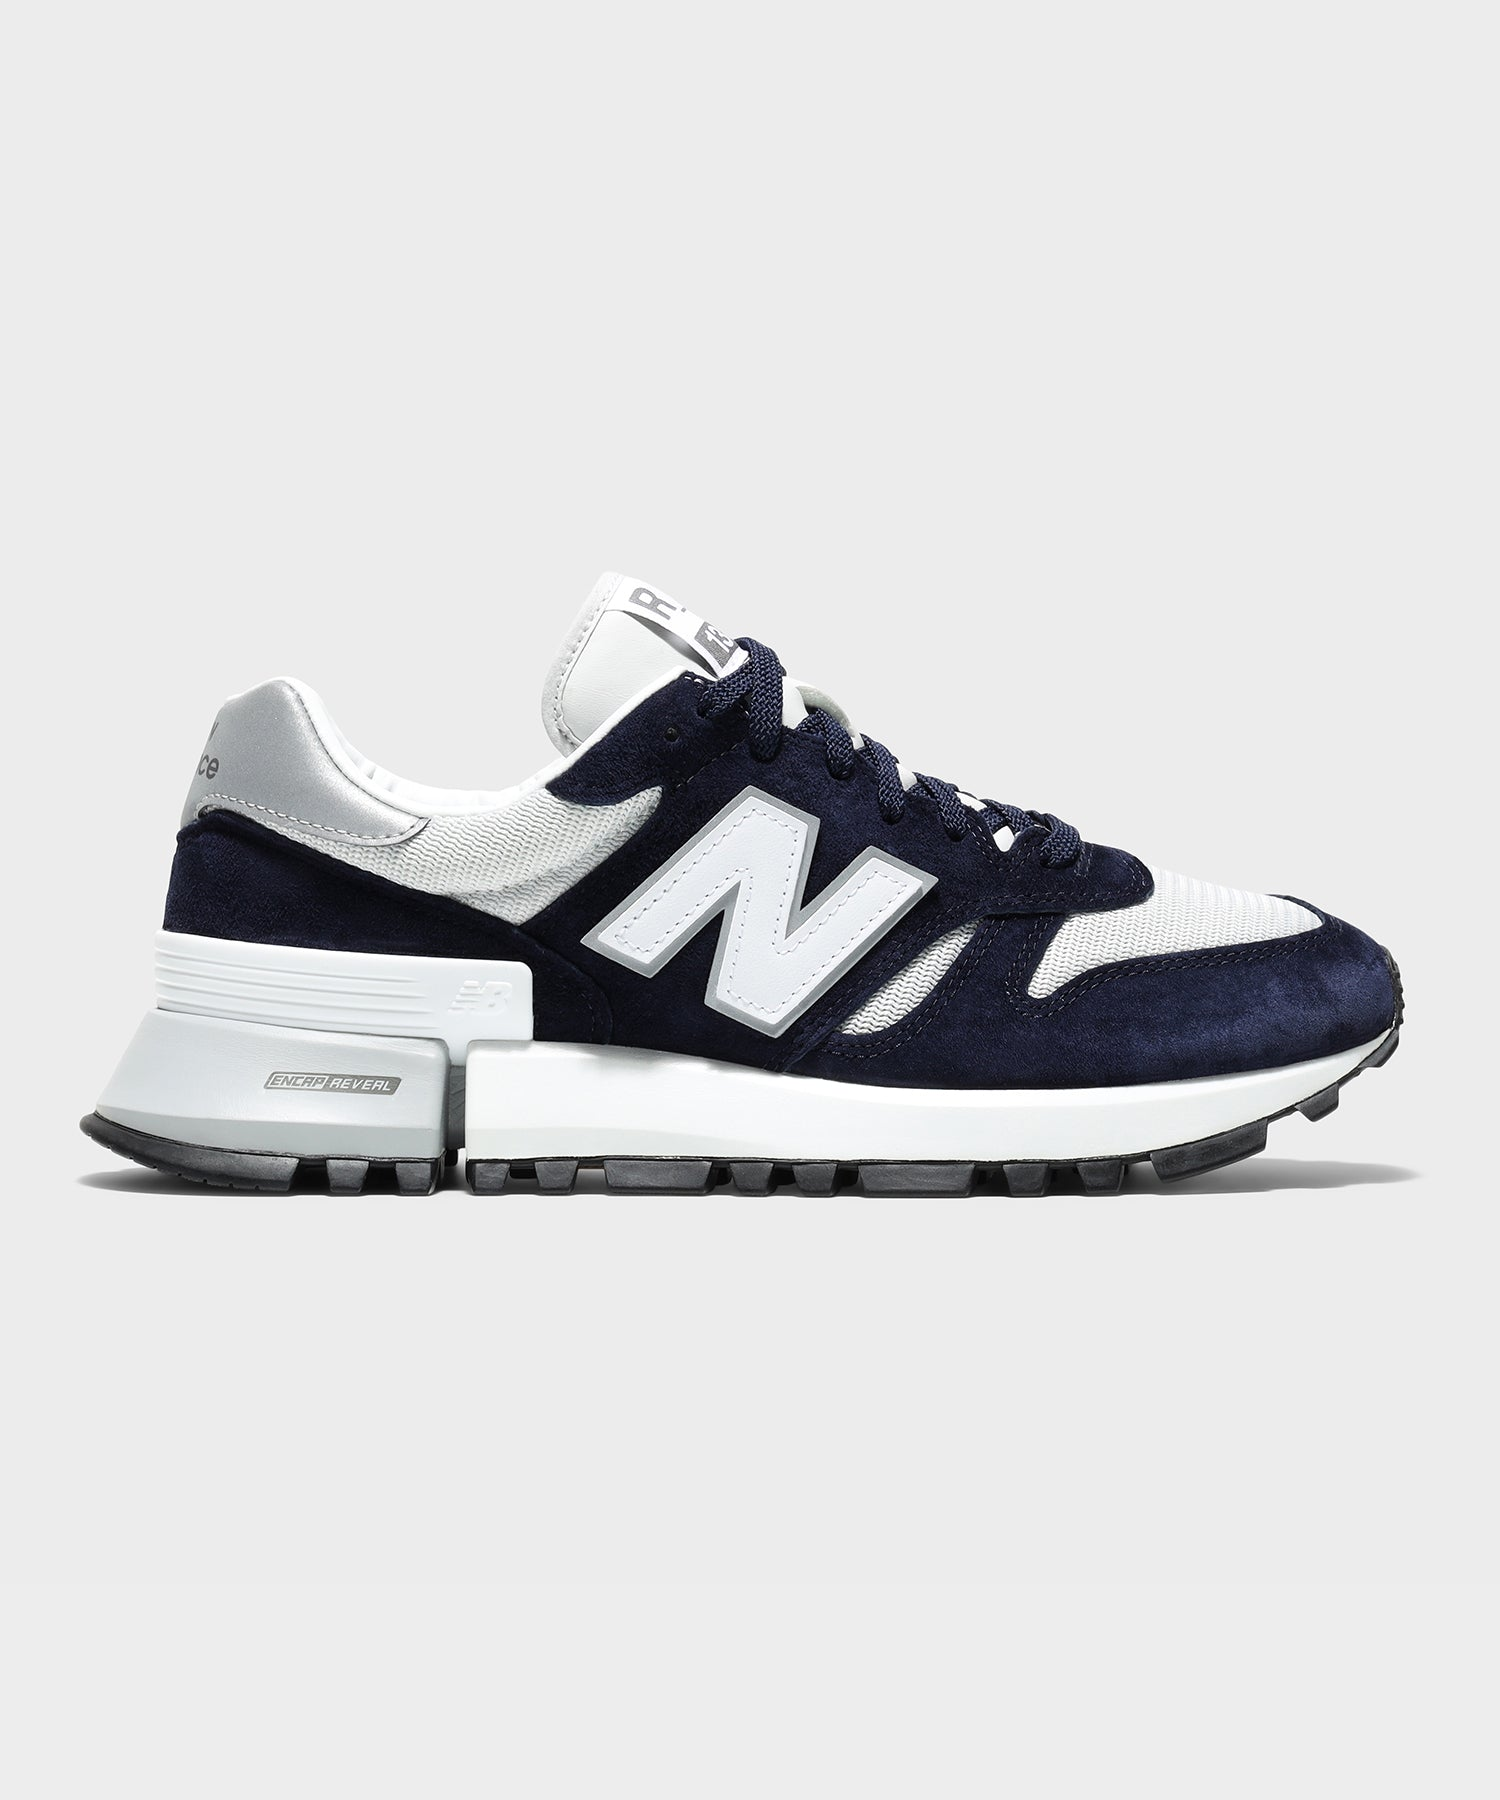 New Balance MS1300 in Navy